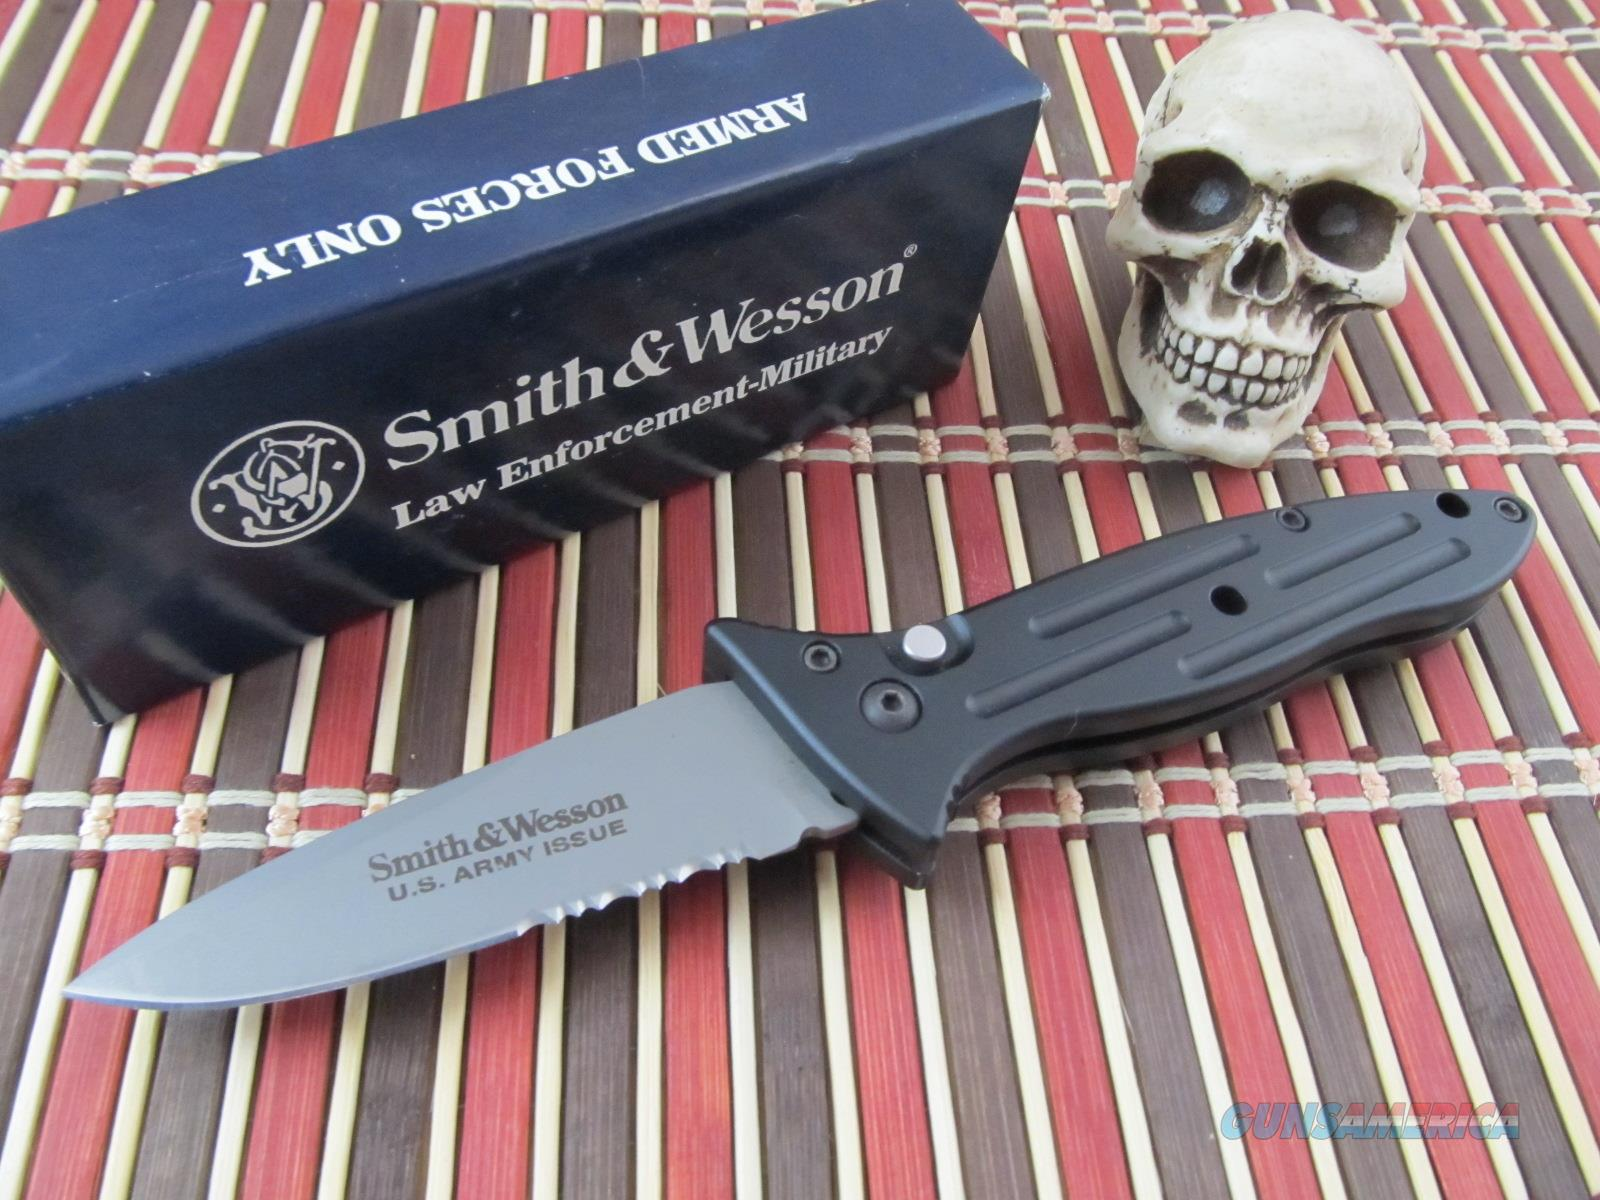 Smith Amp Wesson Knives Us Army Issue Large Auto For Sale